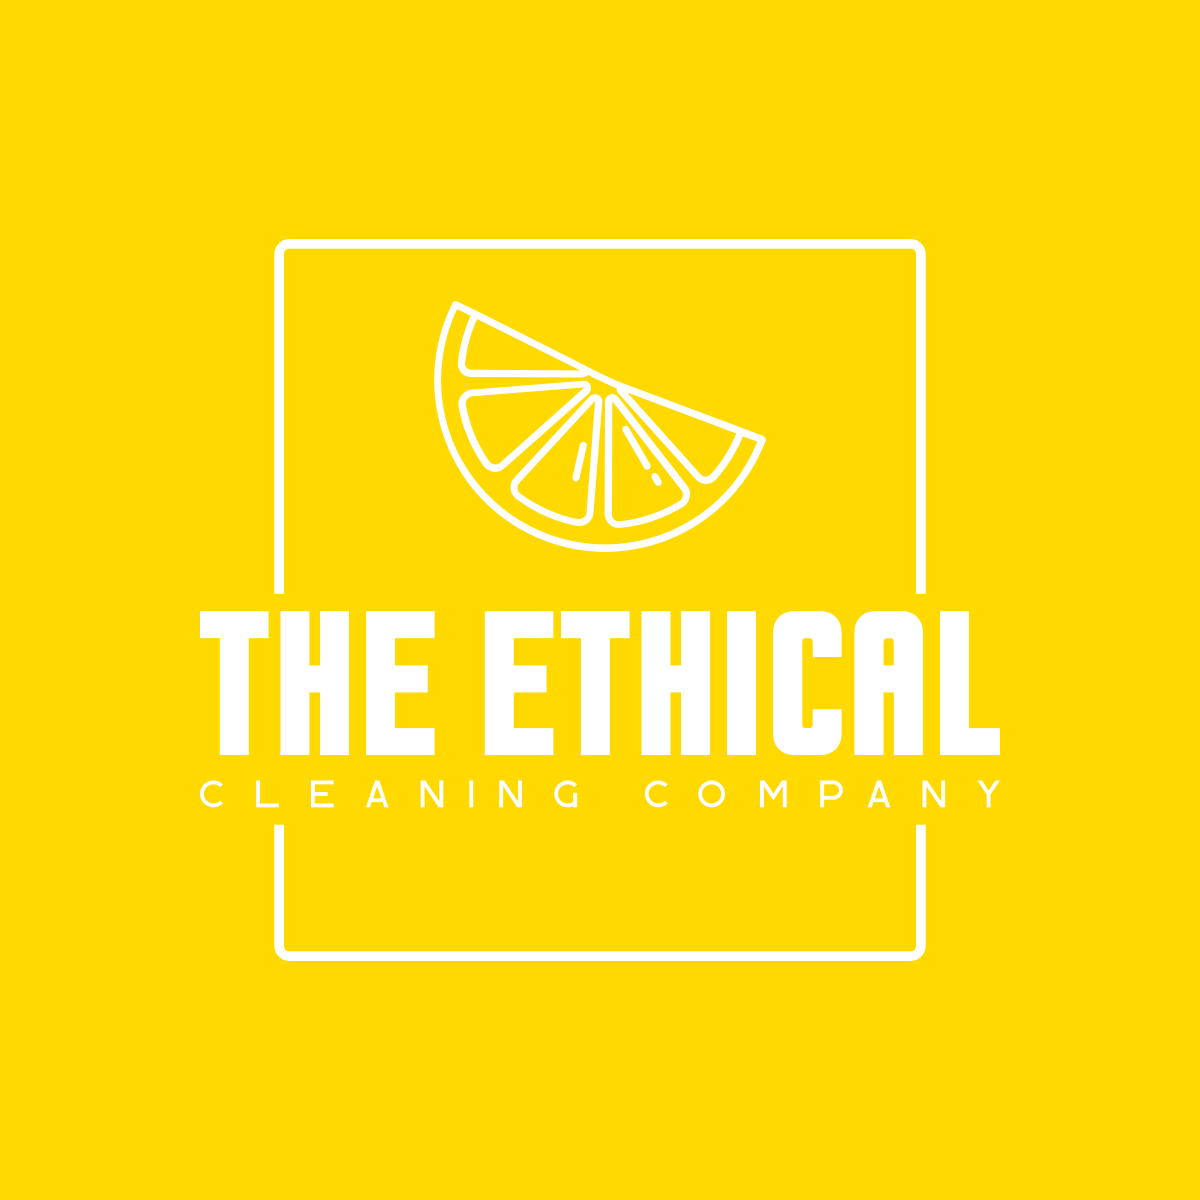 The Ethical Cleaning Company's logo